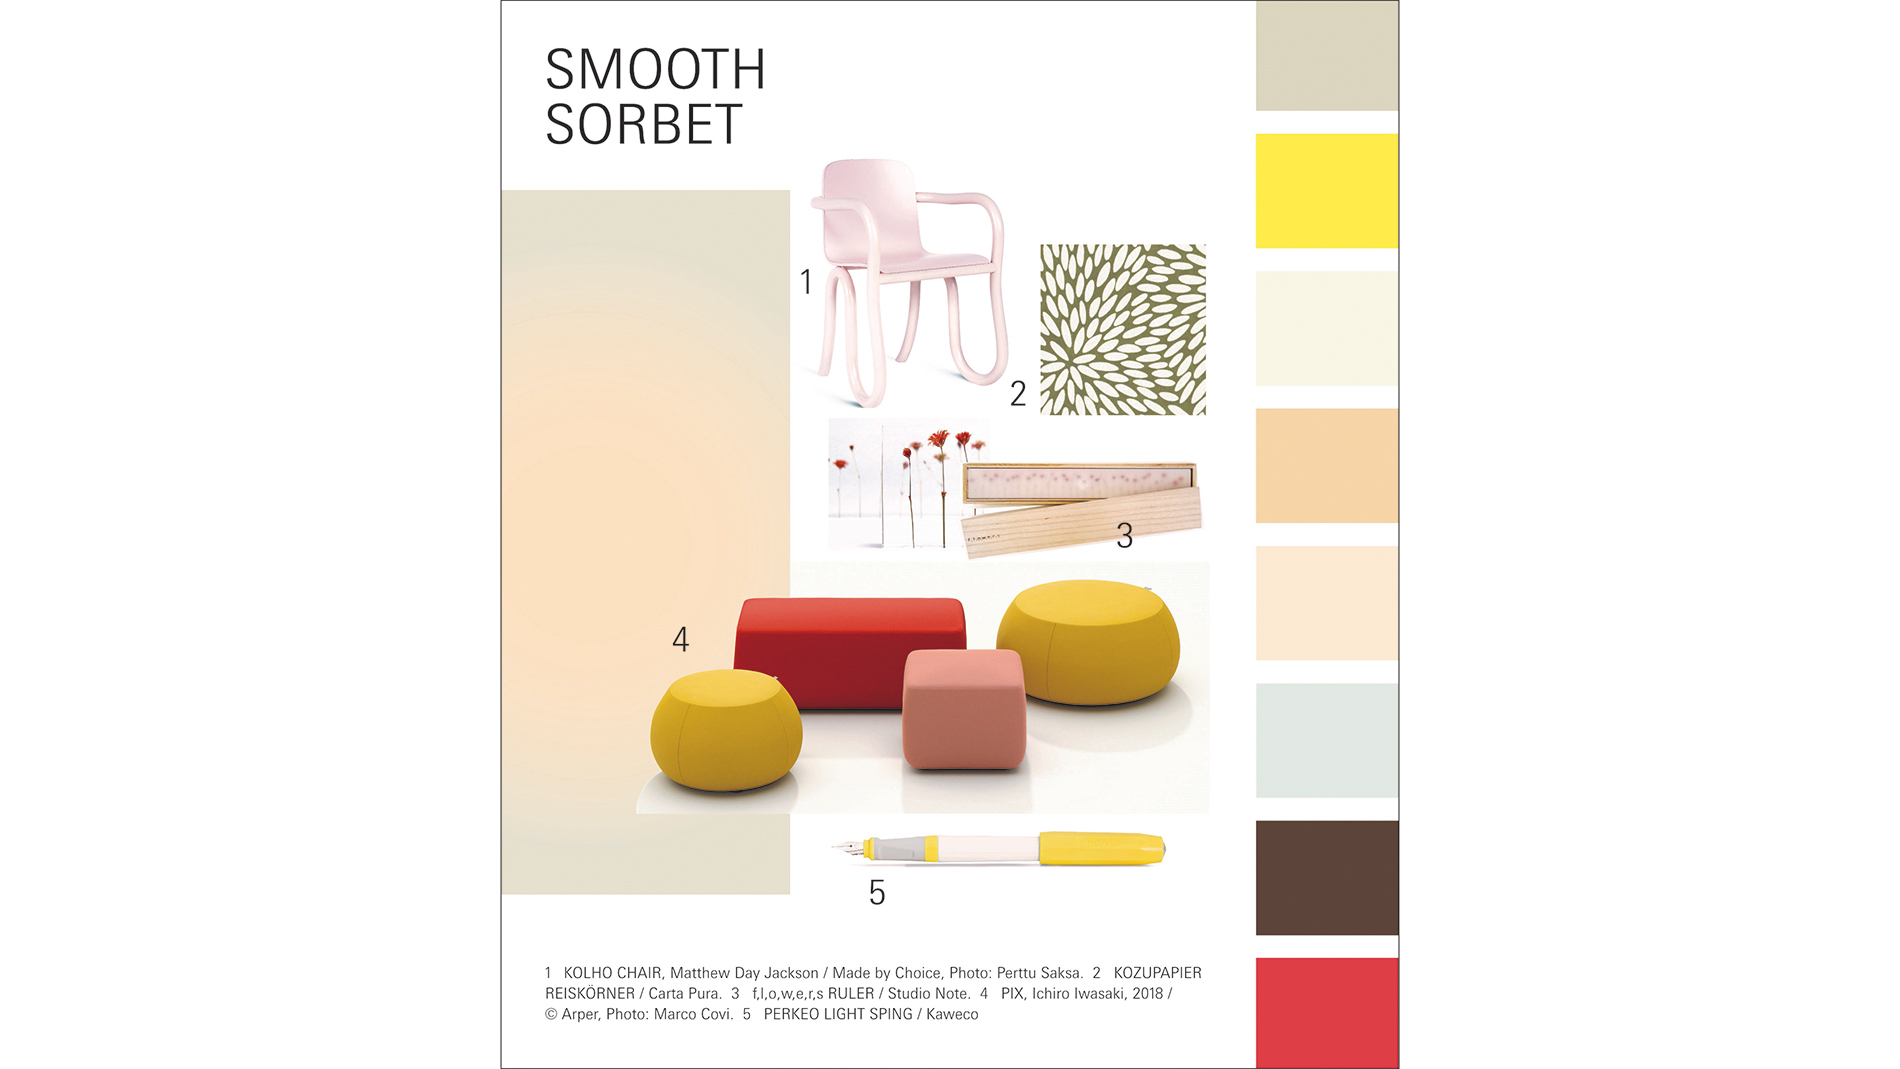 Paperworld Trends 2020/21: Trendkarte zu Smooth Sorbet